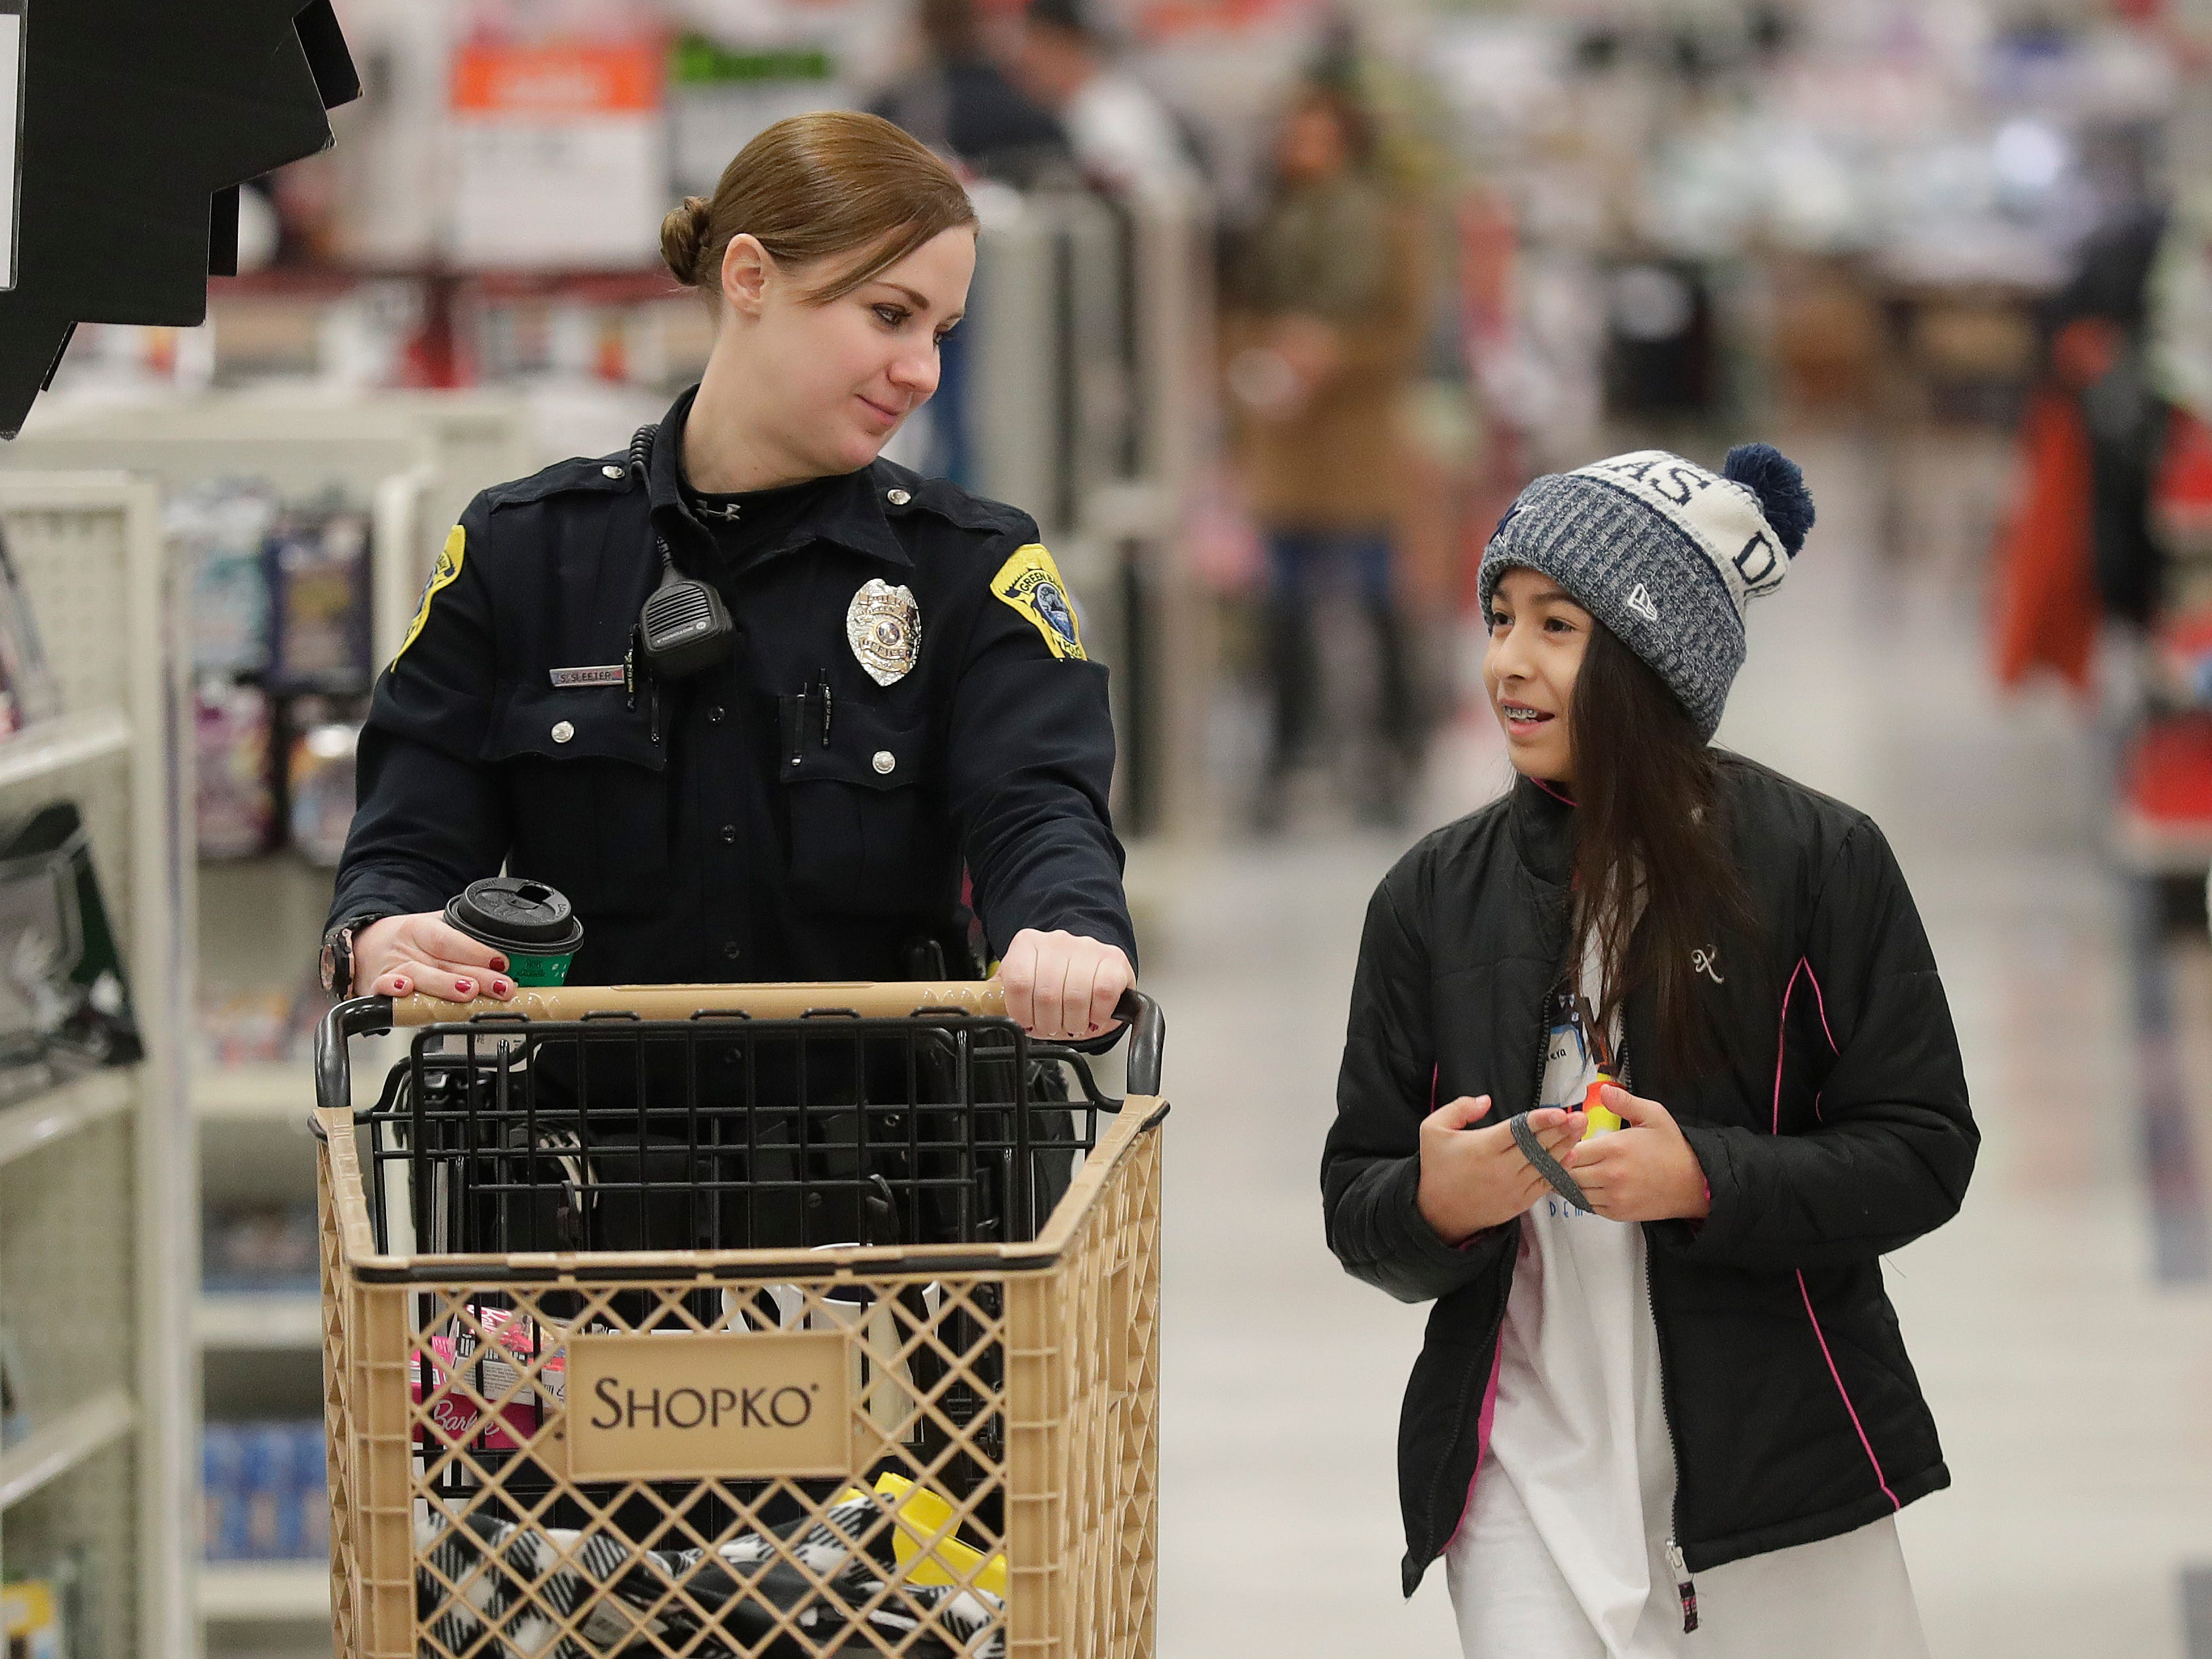 Green Bay Police Department Officer Sheila Sleeter shops with her Shop with A Cop program kid at Shopko on East Mason Street December 8, 2018 in Green Bay, Wis.